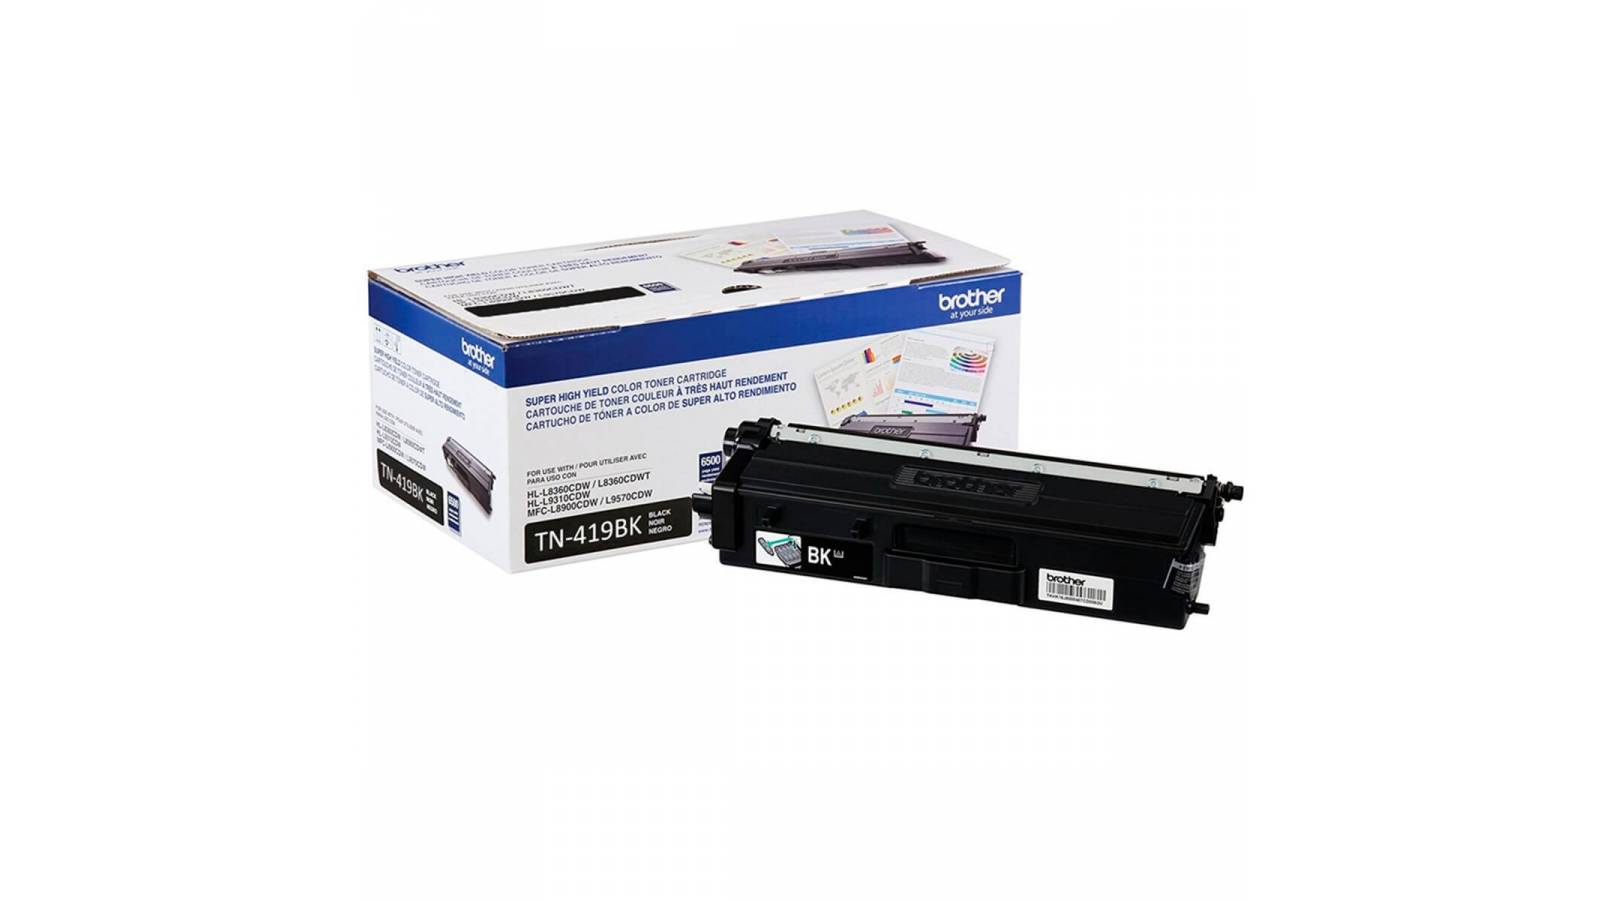 Toner Brother TN-419BK alto rendimiento